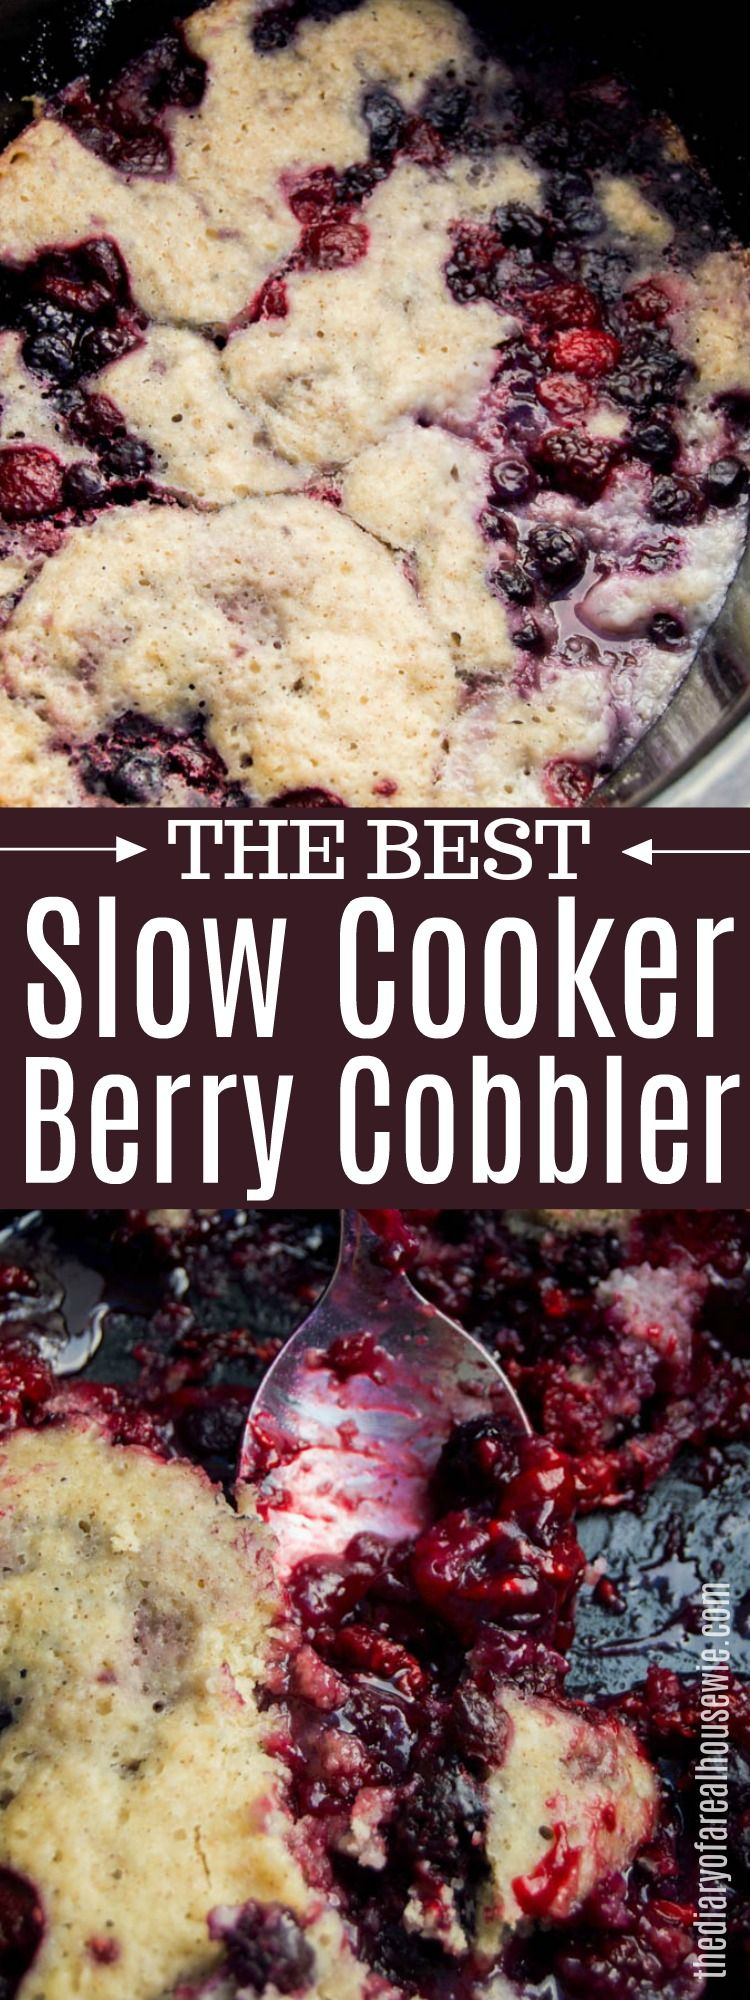 Slow Cooker Berry Cobbler #slowcookerrecipes